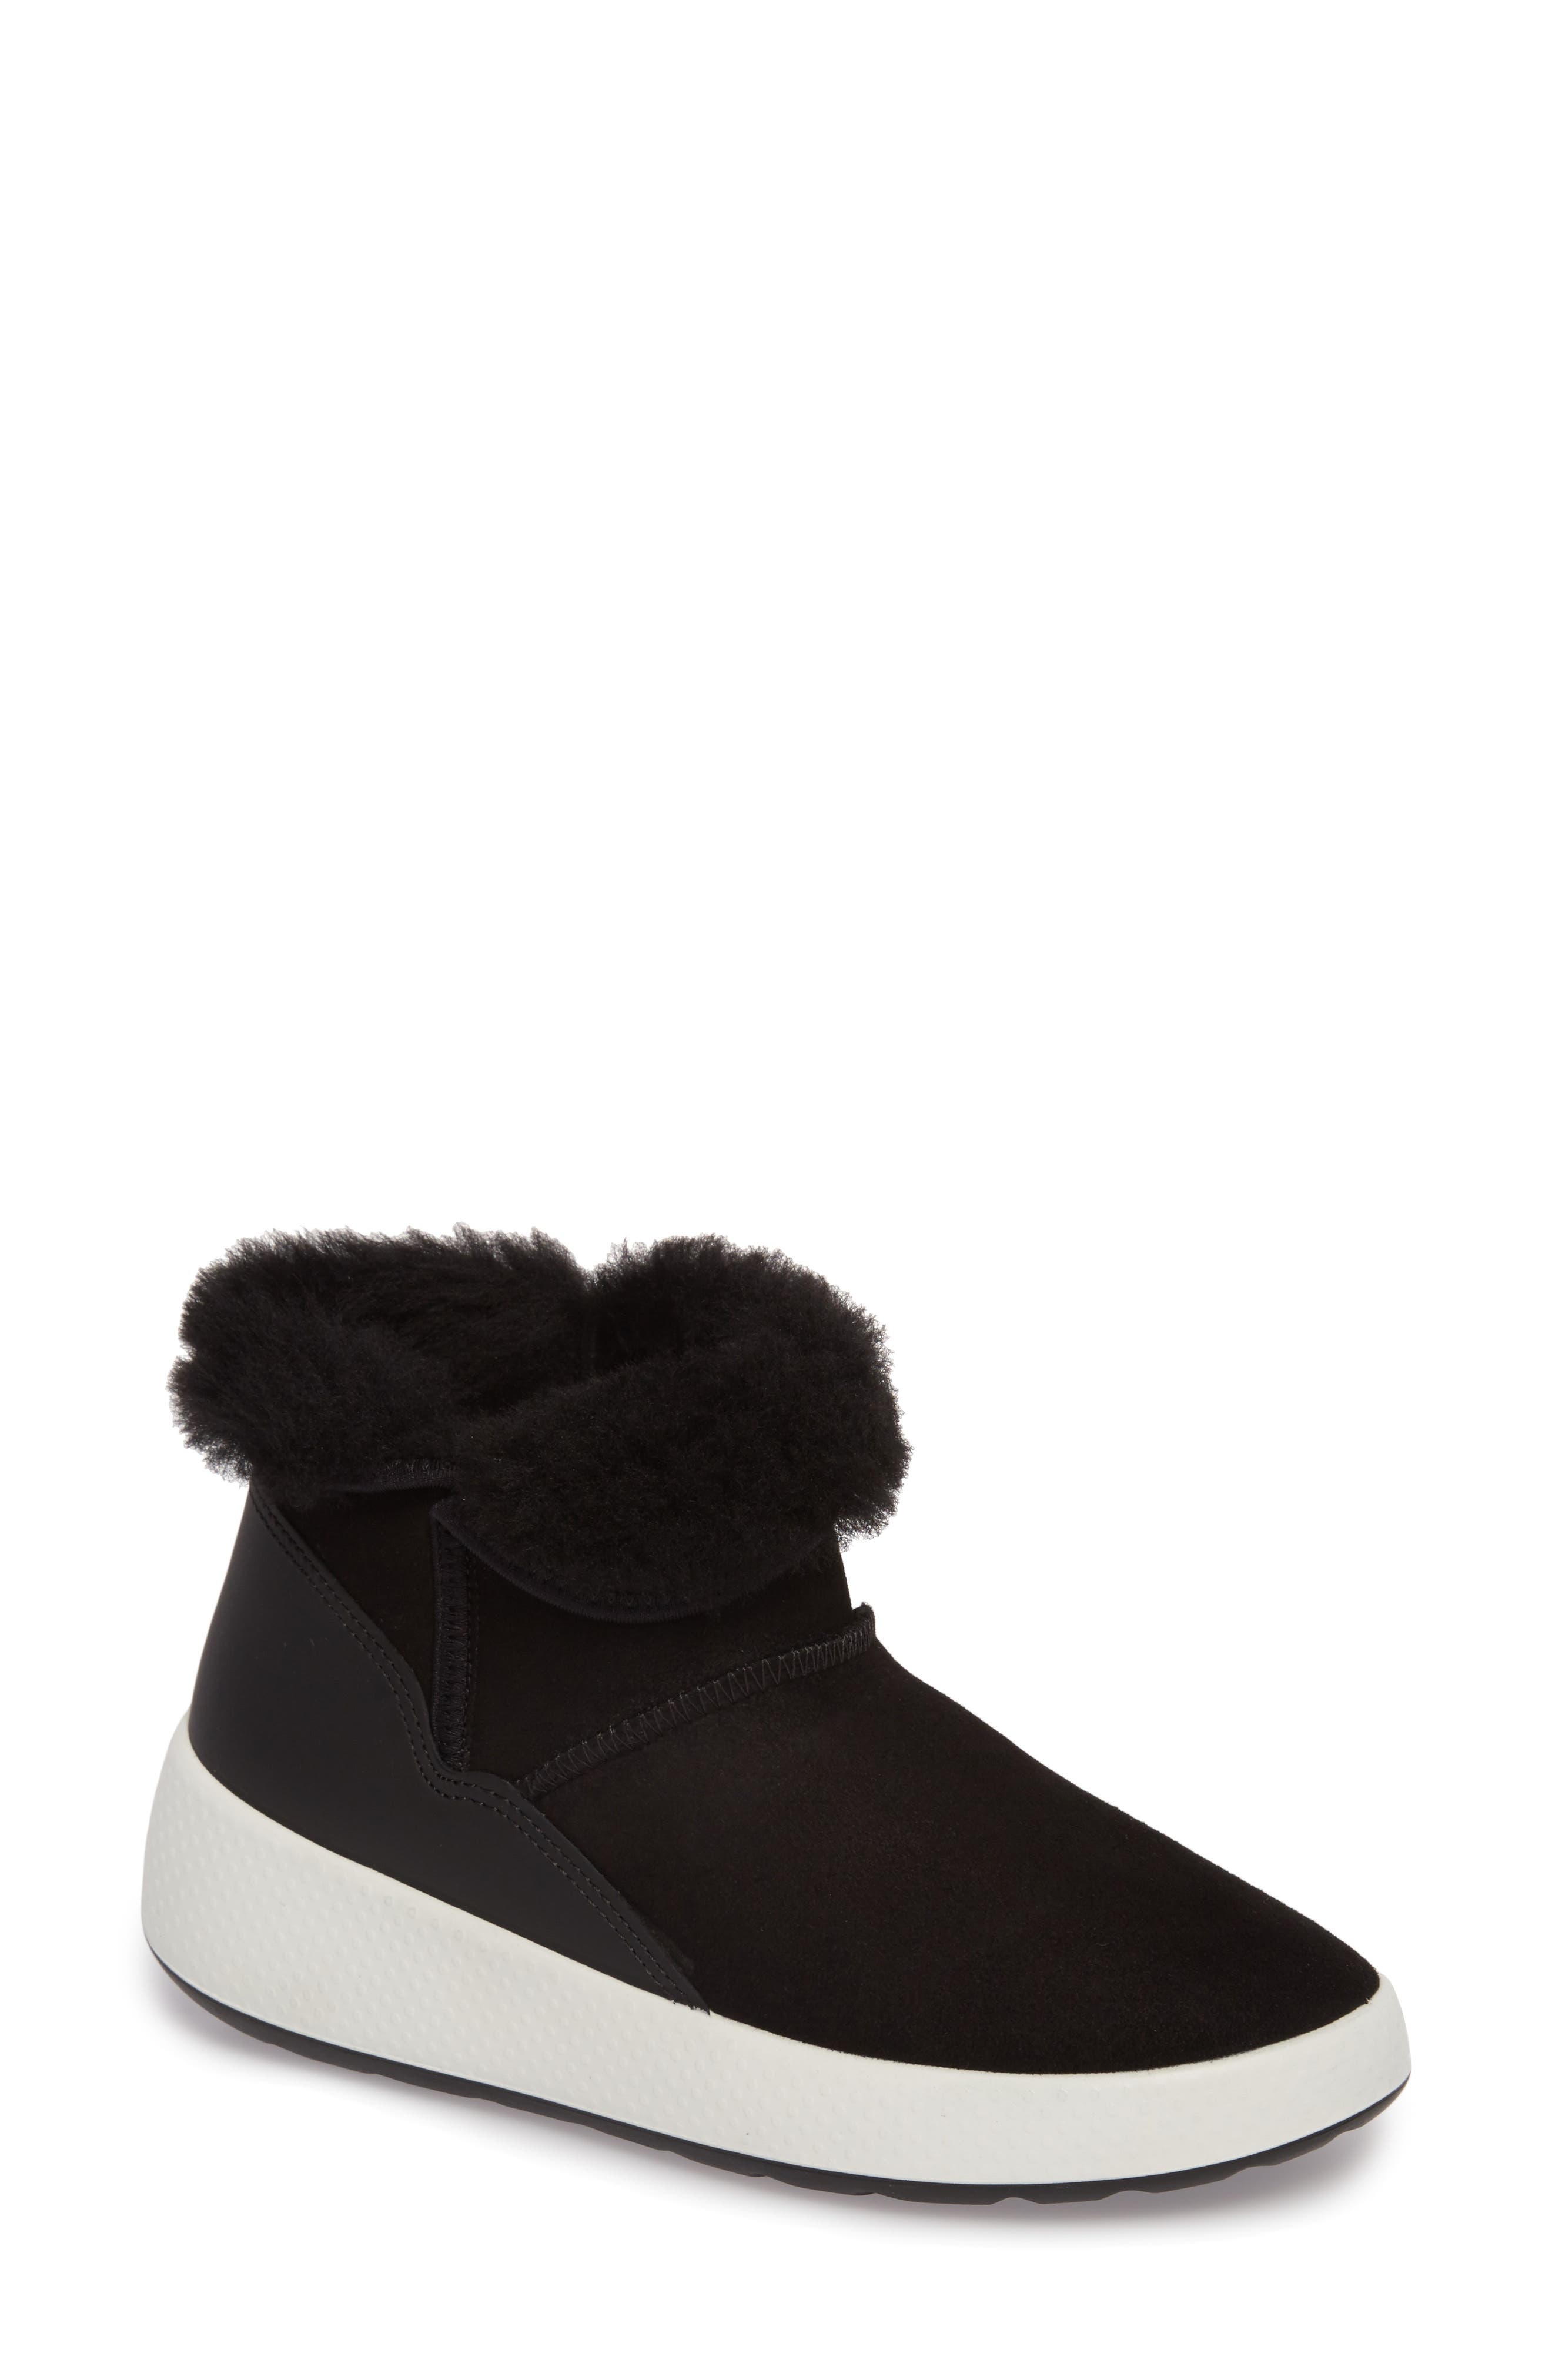 Ukiuk Genuine Shearling Boot,                             Main thumbnail 1, color,                             001